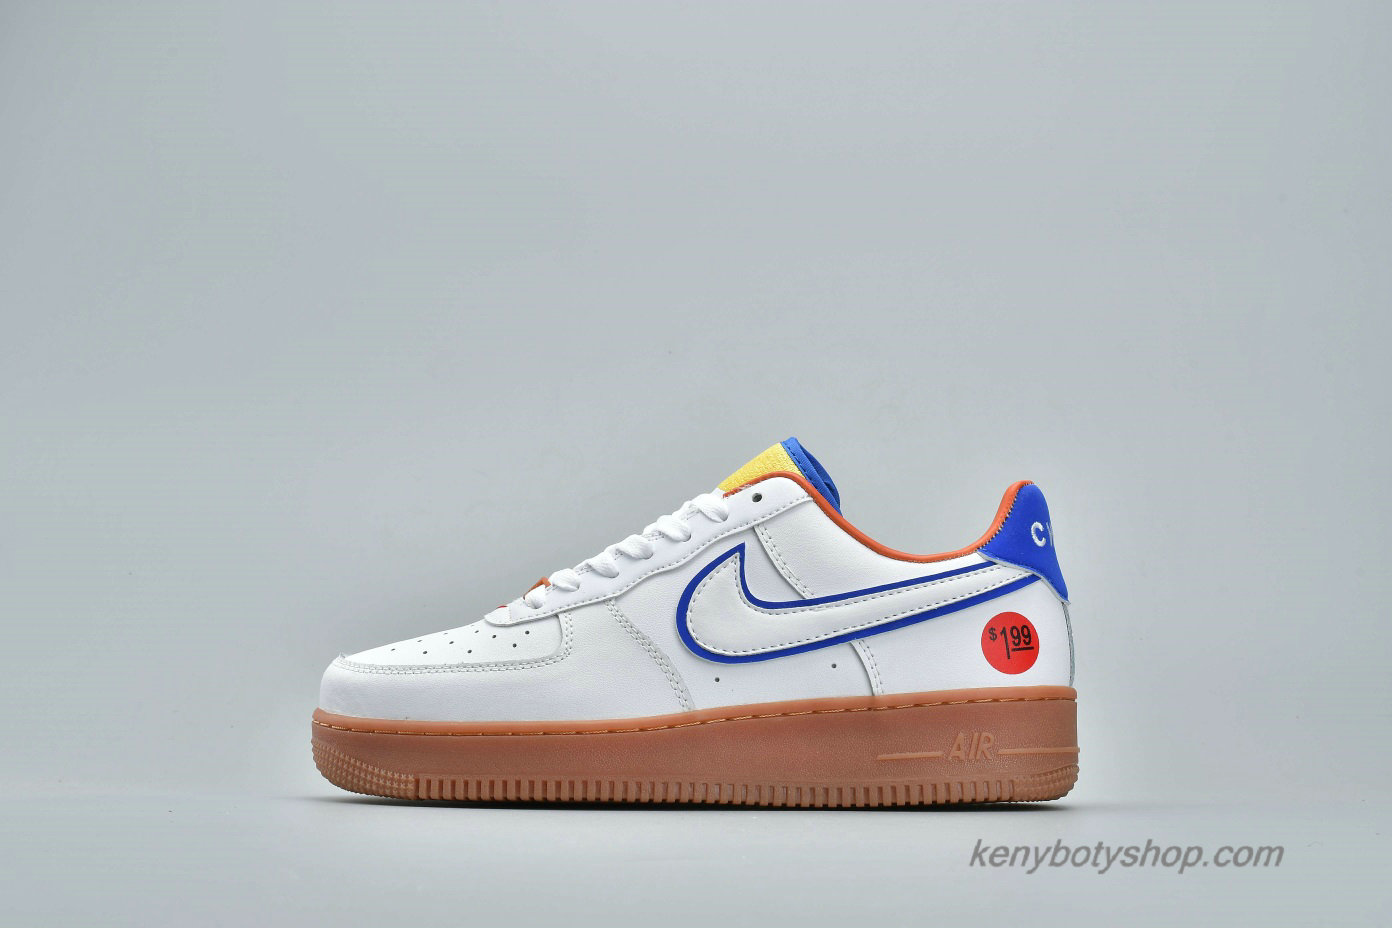 Boty Nike Air Force 1 Low UPSTEP WONDER BREAD Unisex 653774-660 (Bílý / Modrý)